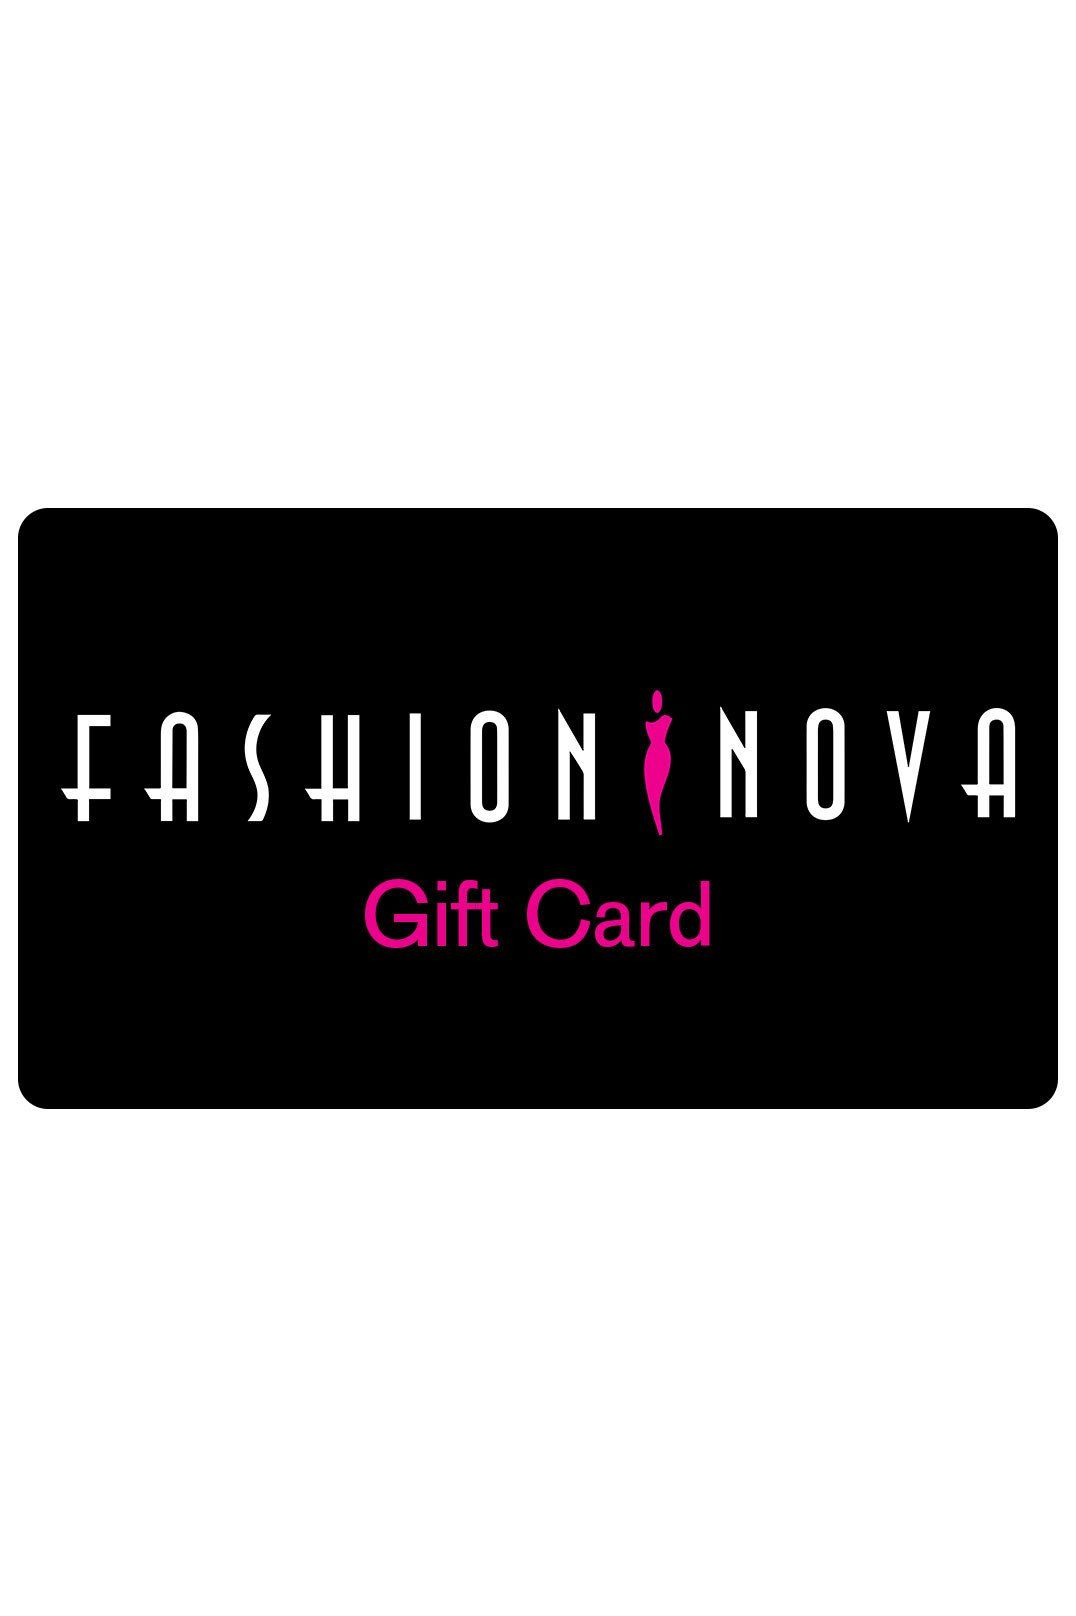 Gift Card Best Gift Cards Gift Card Discount Gift Cards